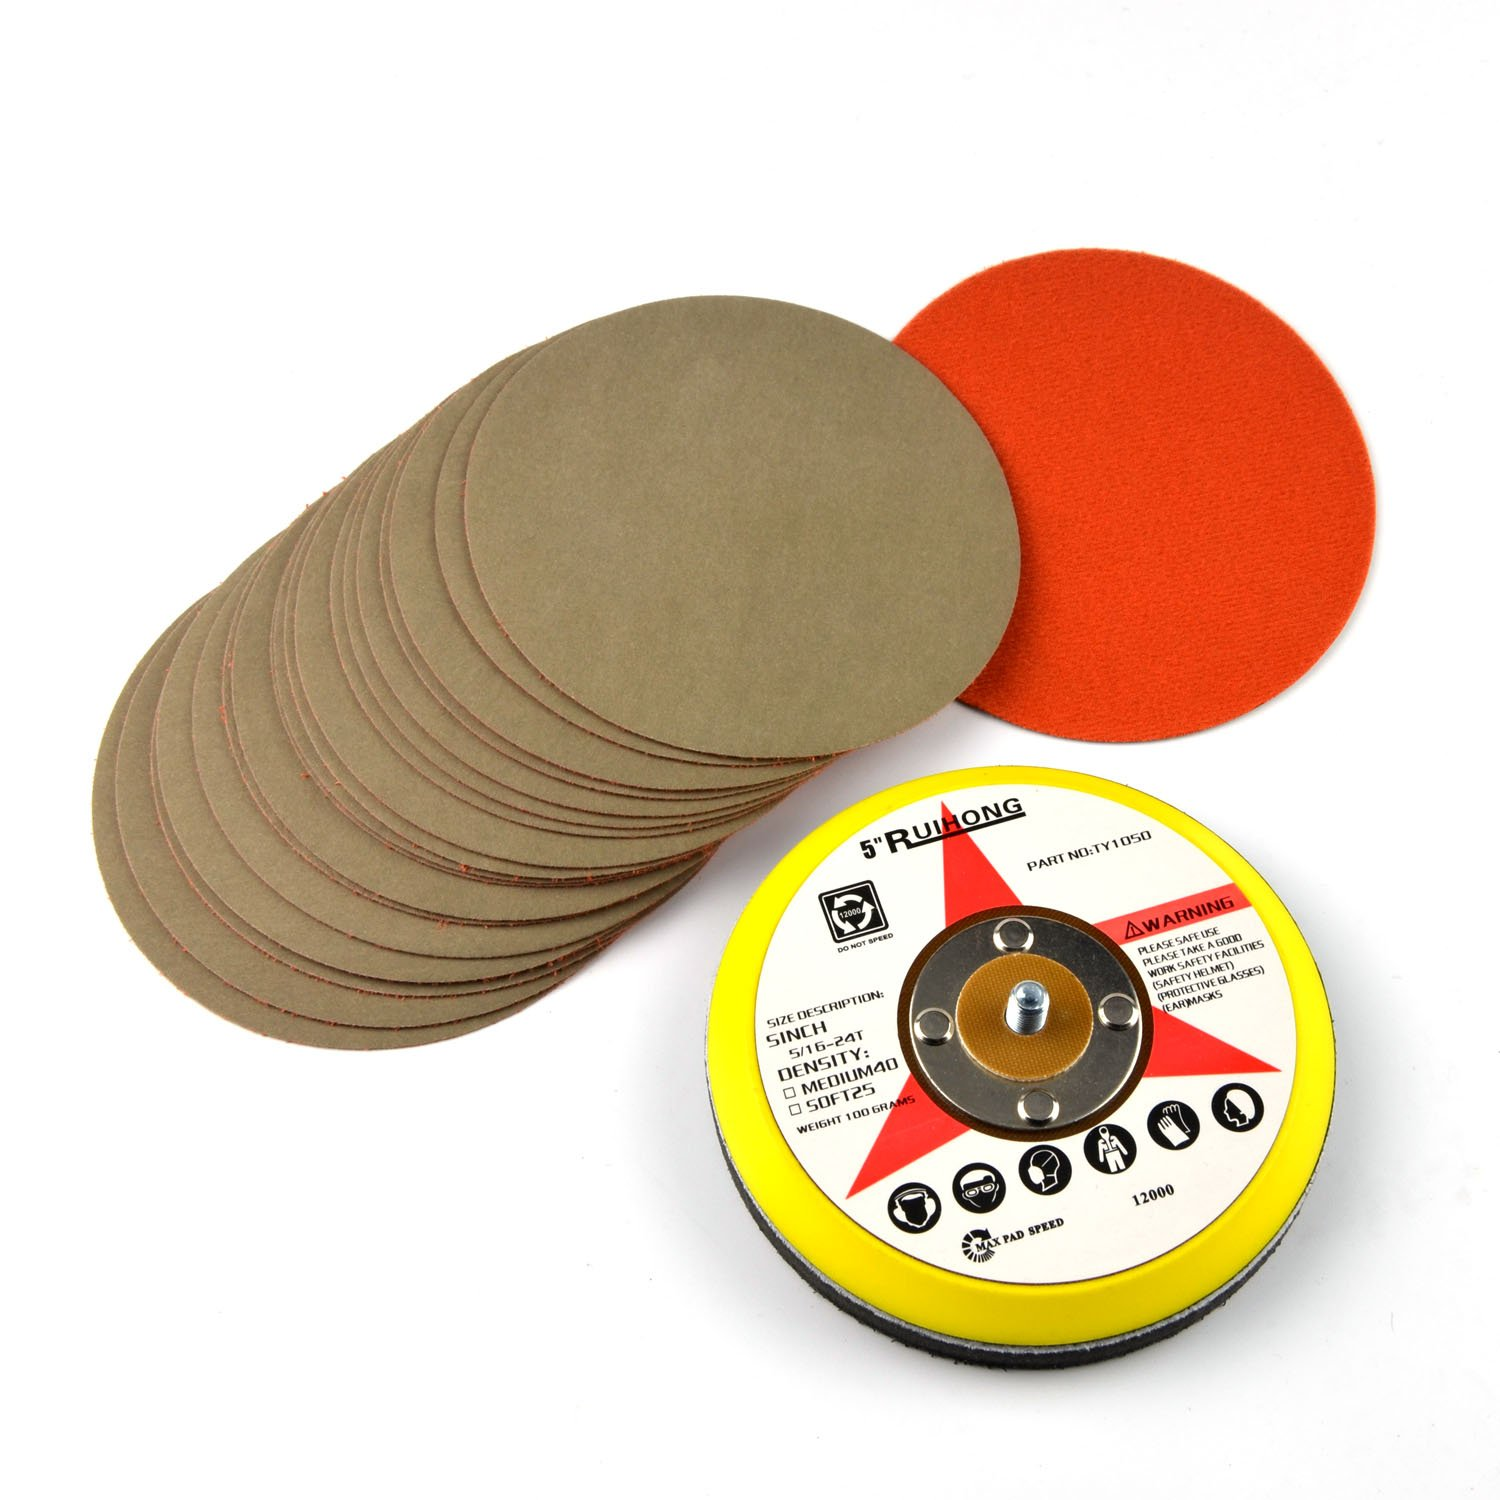 5-Inch 7000 Grit Aluminum Oxide Wet/Dry Hook and Loop Sanding Discs with a 5/16-24 Inch Thread Backing Pad + Soft Sponge Buffering Pad, 20-Pack Jinhua Puxian e-Commerce Co. Ltd